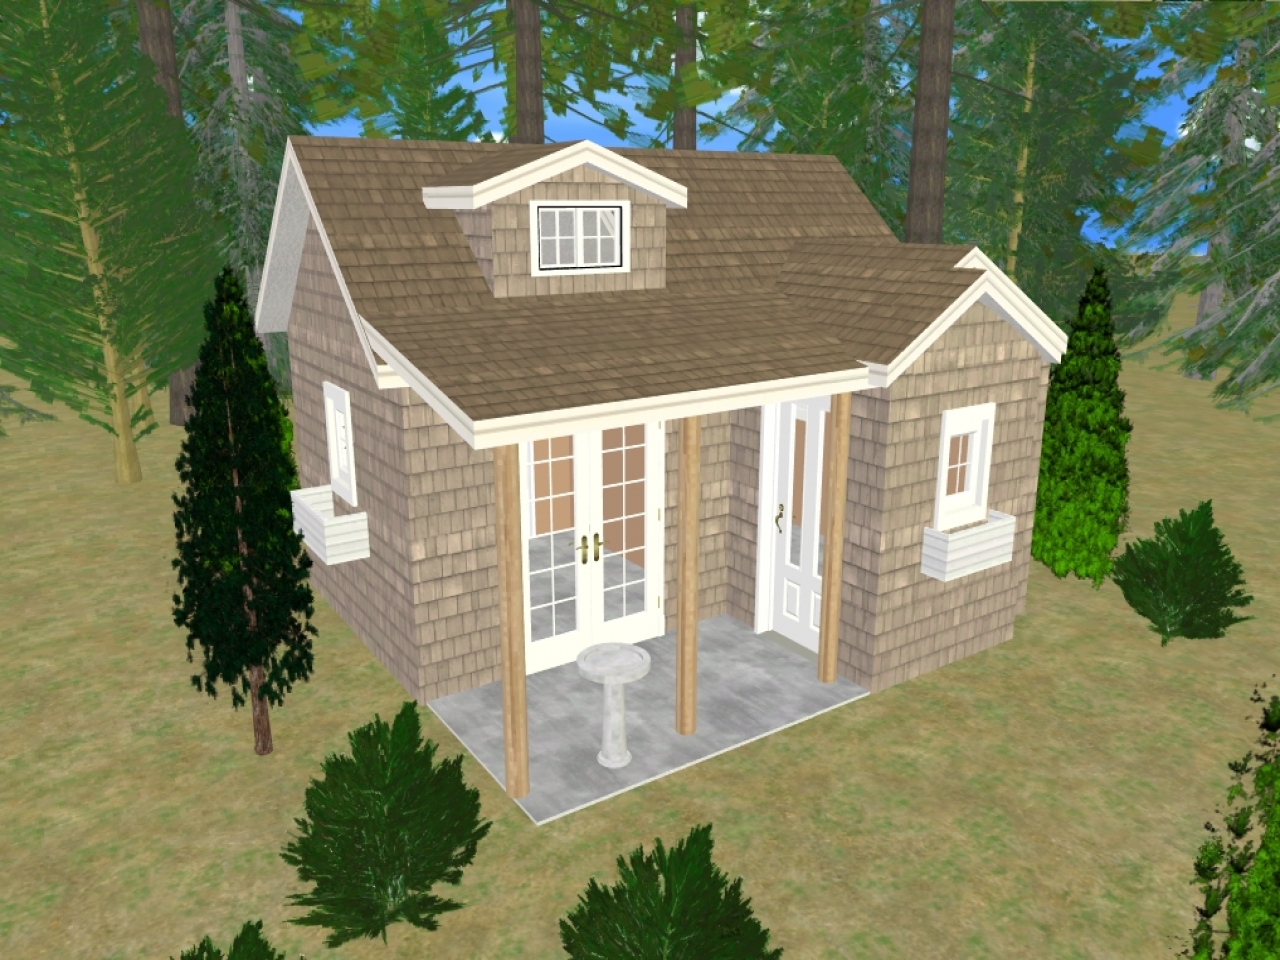 Shed Pictures Design: Storage Sheds Turned Into Houses Small Shed House Plans